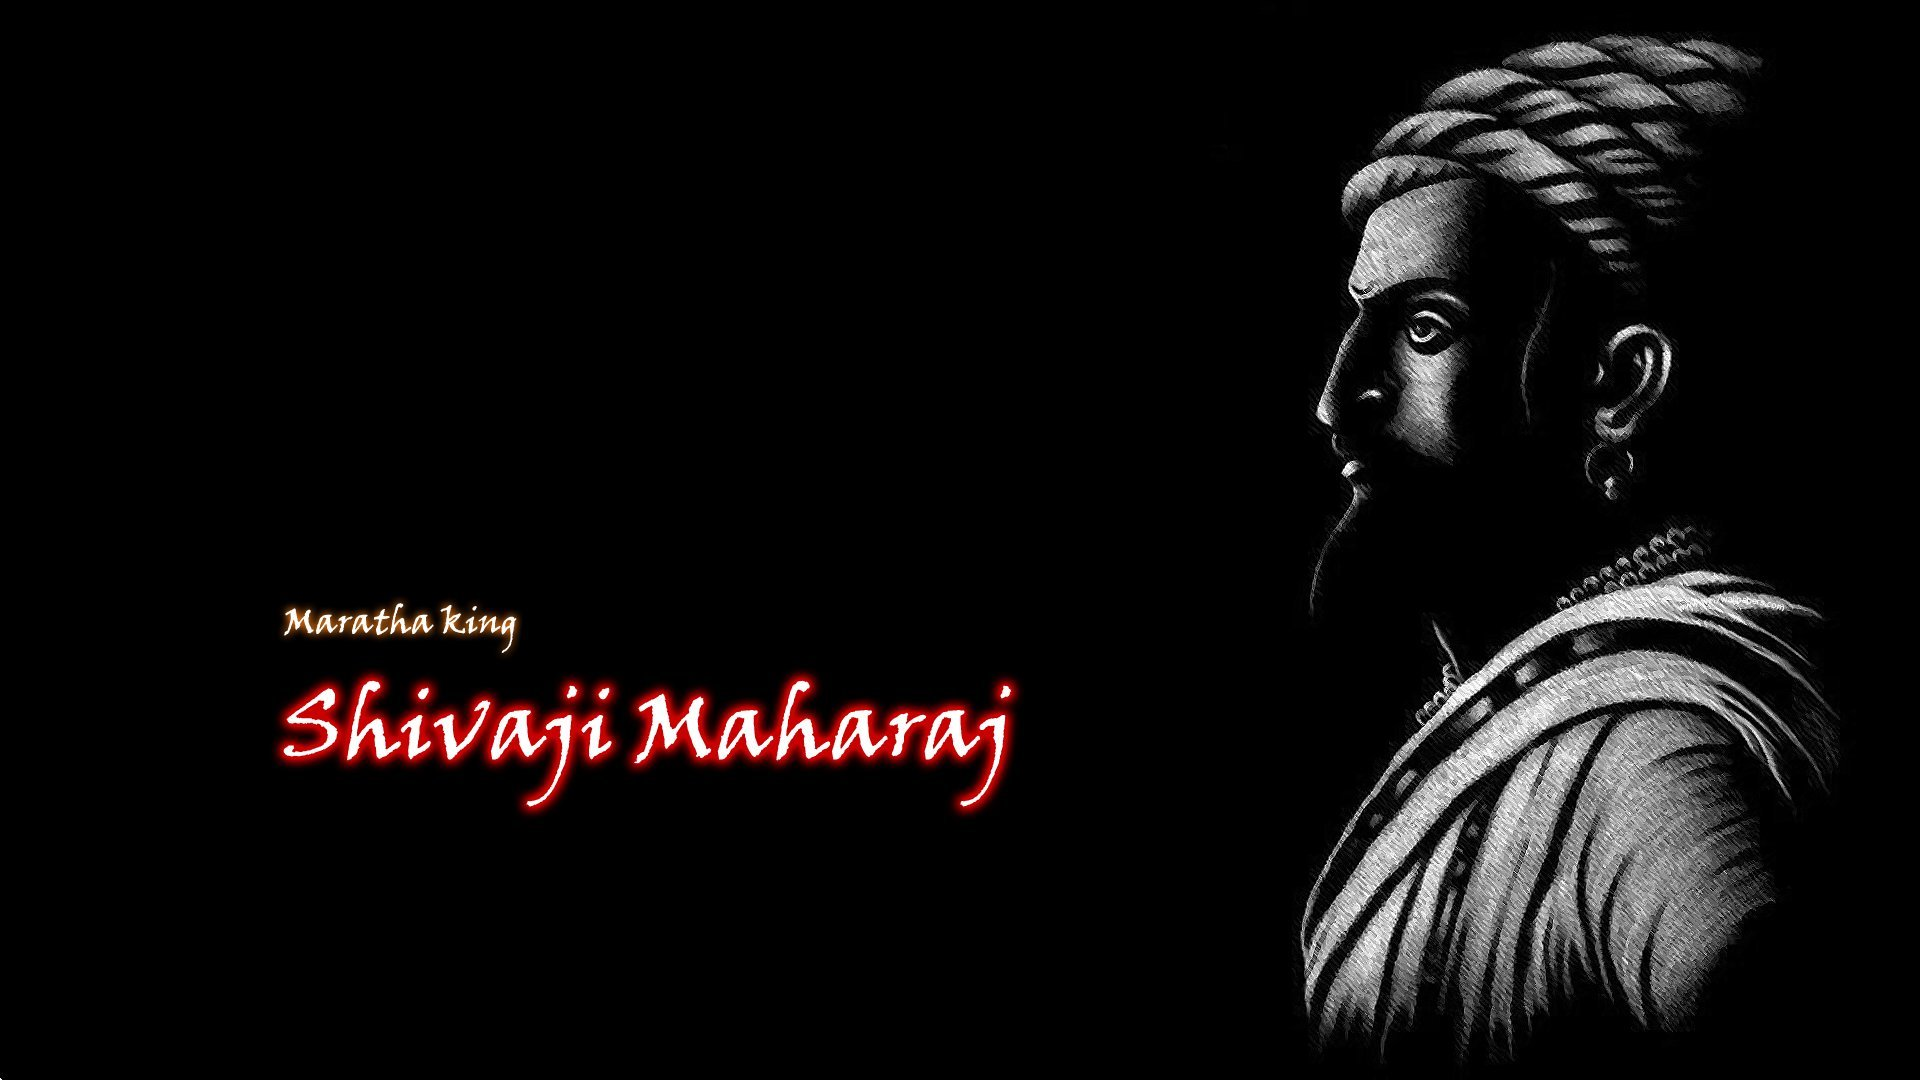 Shivaji Maharaj Photo Free Download: Shivaji Maharaj Photo Hd 2017 Download